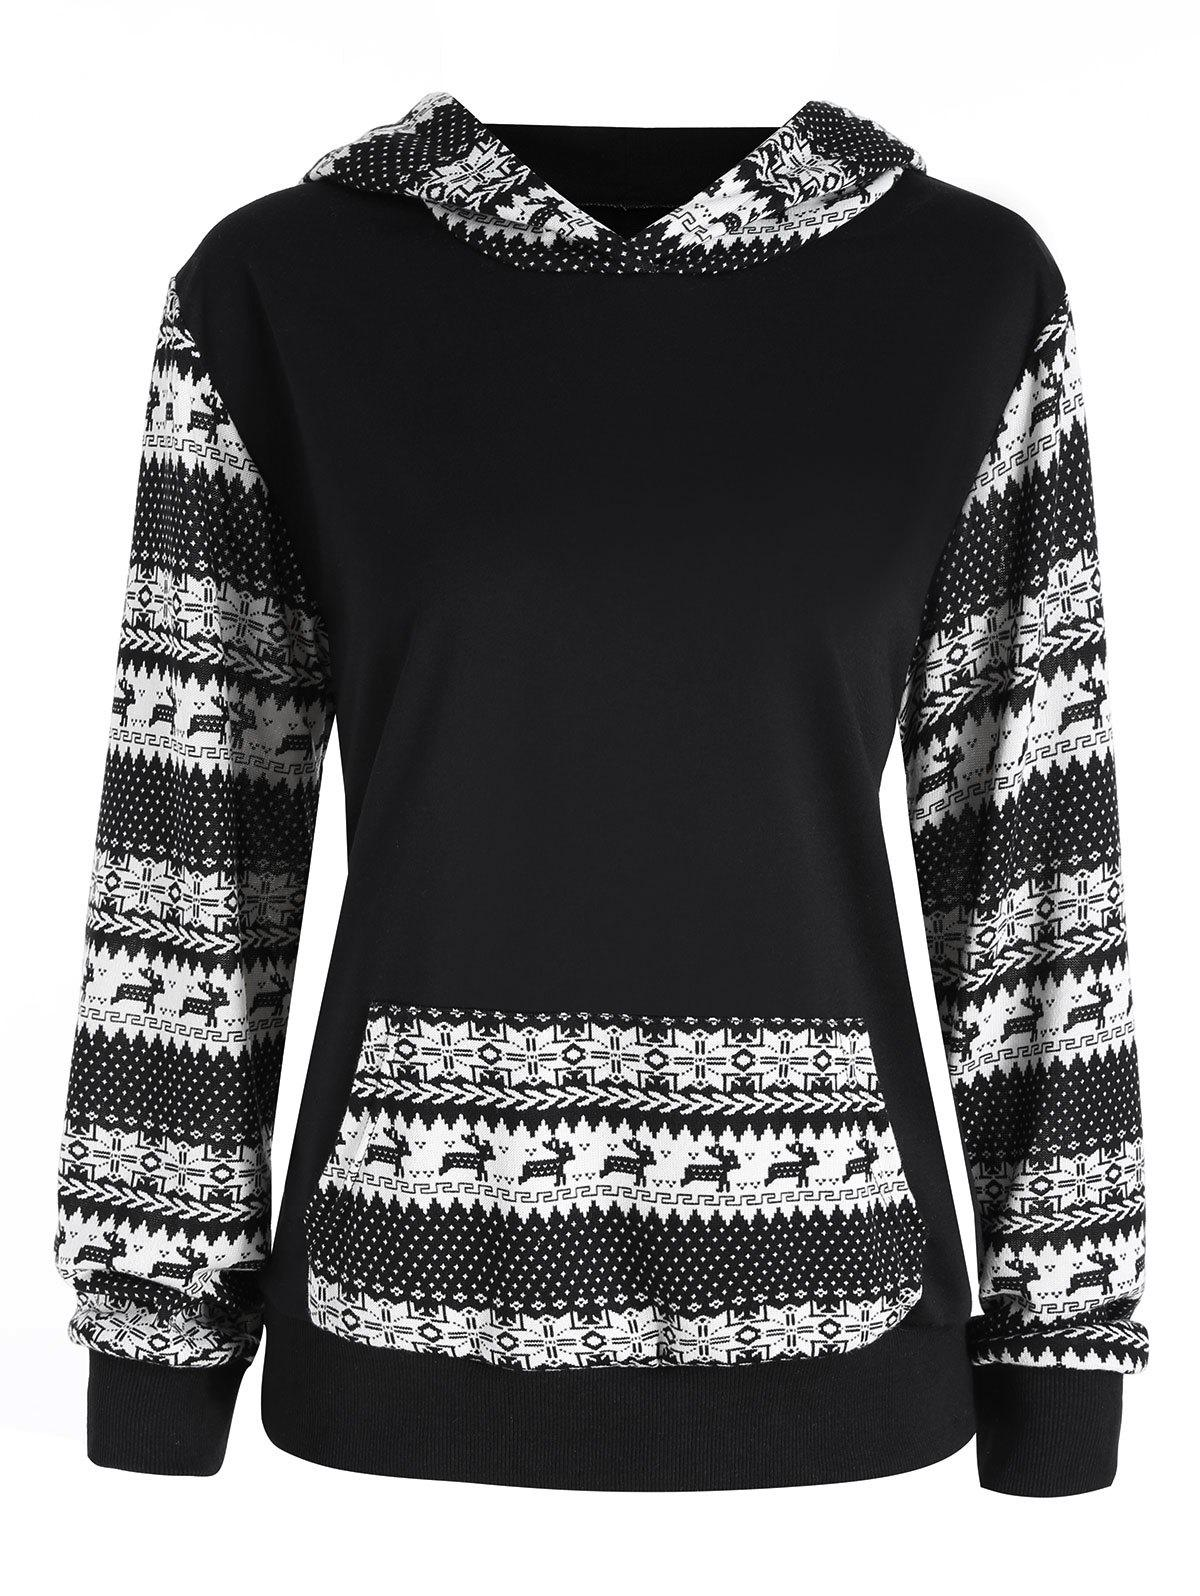 Christmas Snow Printed Plus Size Raglan HoodieWOMEN<br><br>Size: 4XL; Color: BLACK; Material: Polyester; Shirt Length: Regular; Sleeve Length: Full; Style: Fashion; Pattern Style: Print; Embellishment: Front Pocket; Season: Fall; Weight: 0.4600kg; Package Contents: 1 x Hoodie;